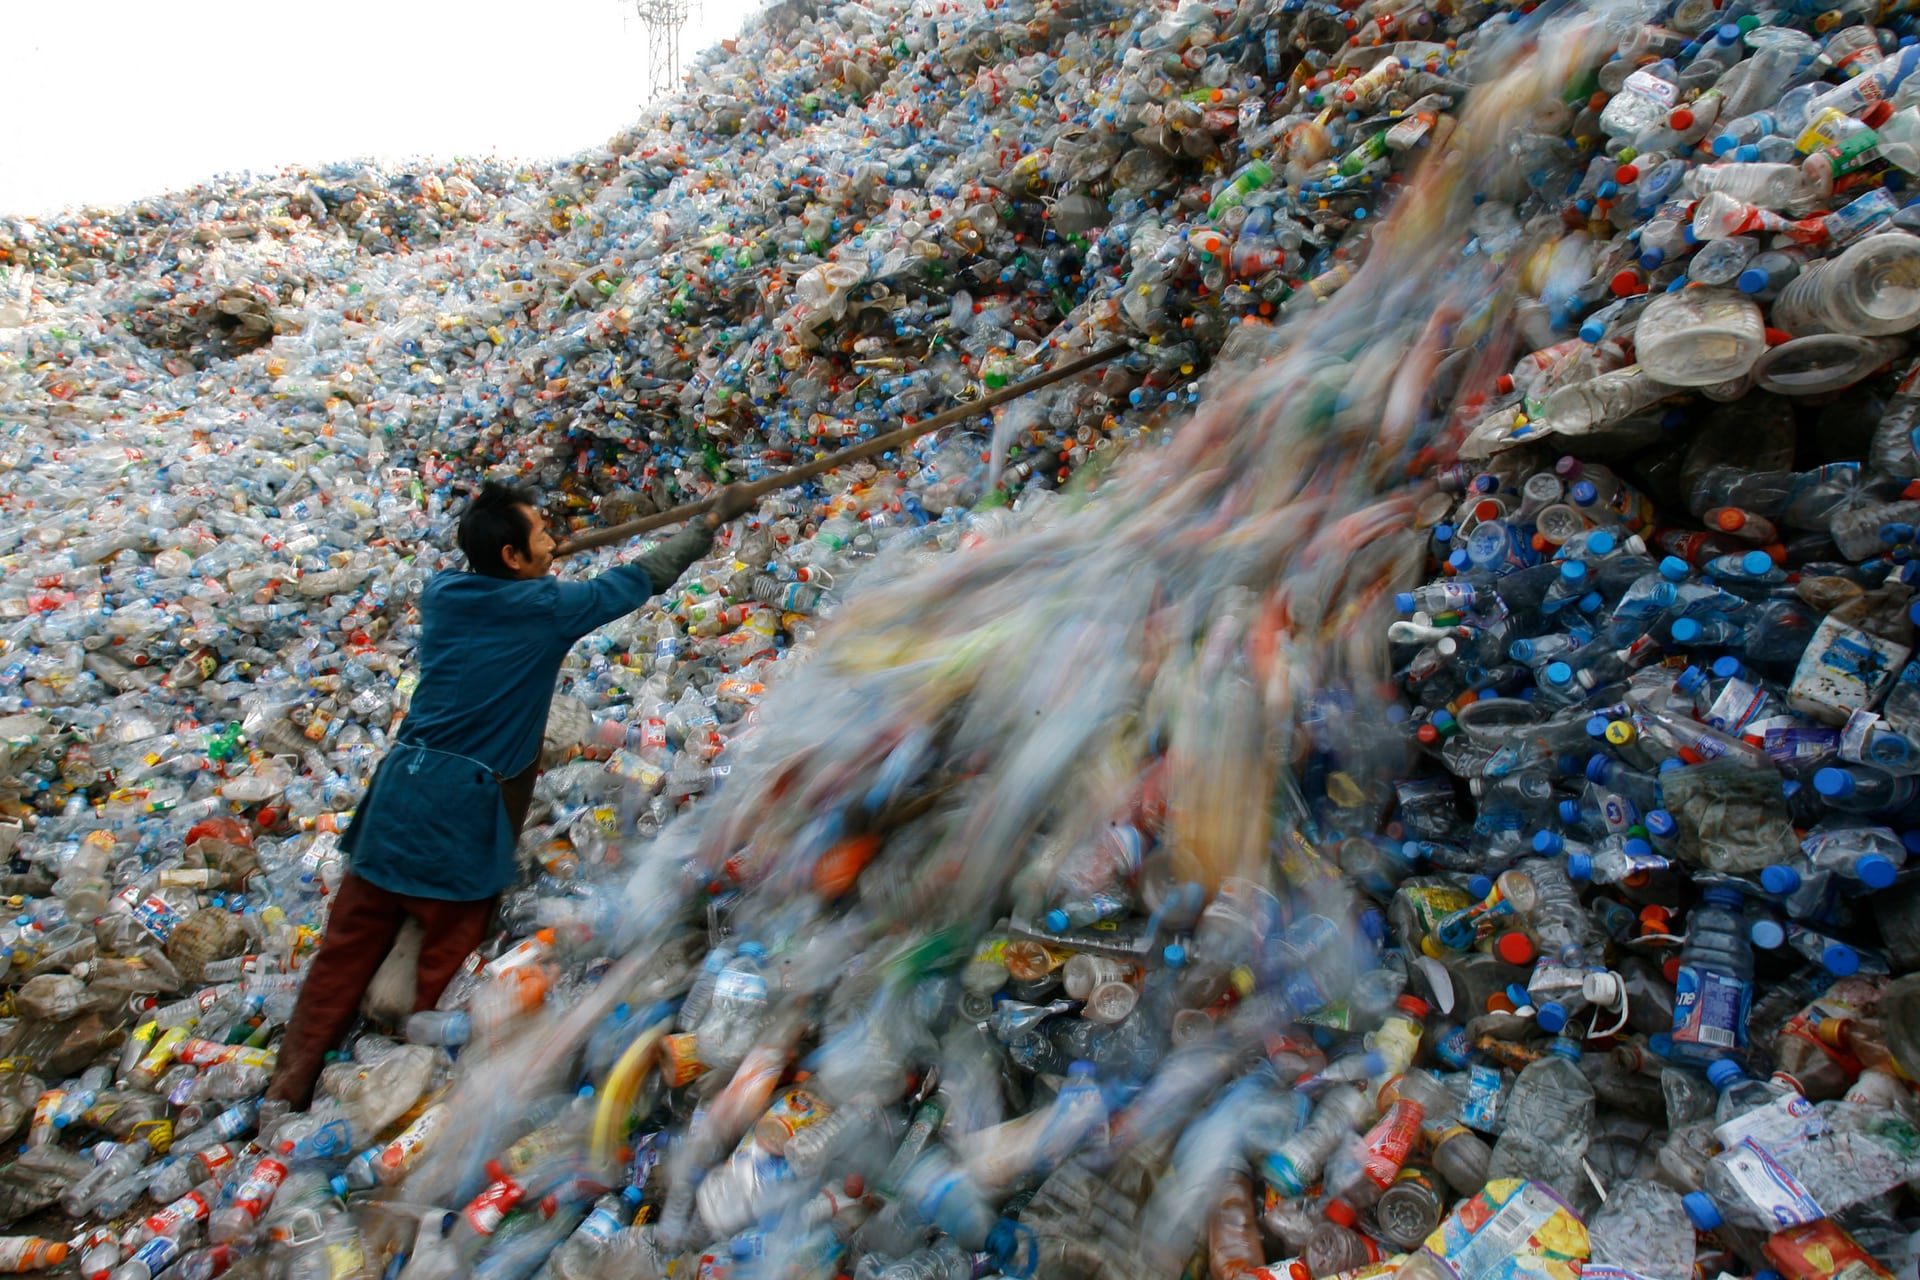 A worker sorts out plastic waste / Source: The Guardian